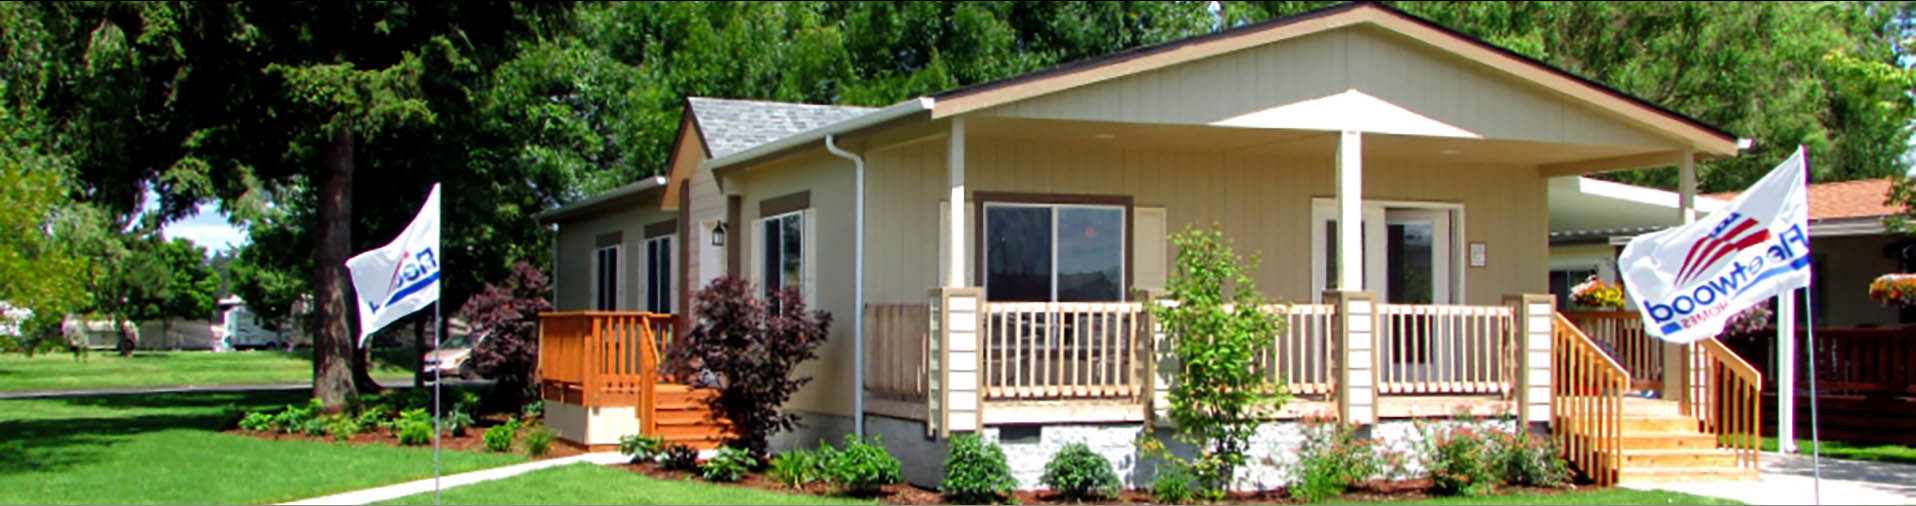 Washington Mobile Home Loan Products And Programs